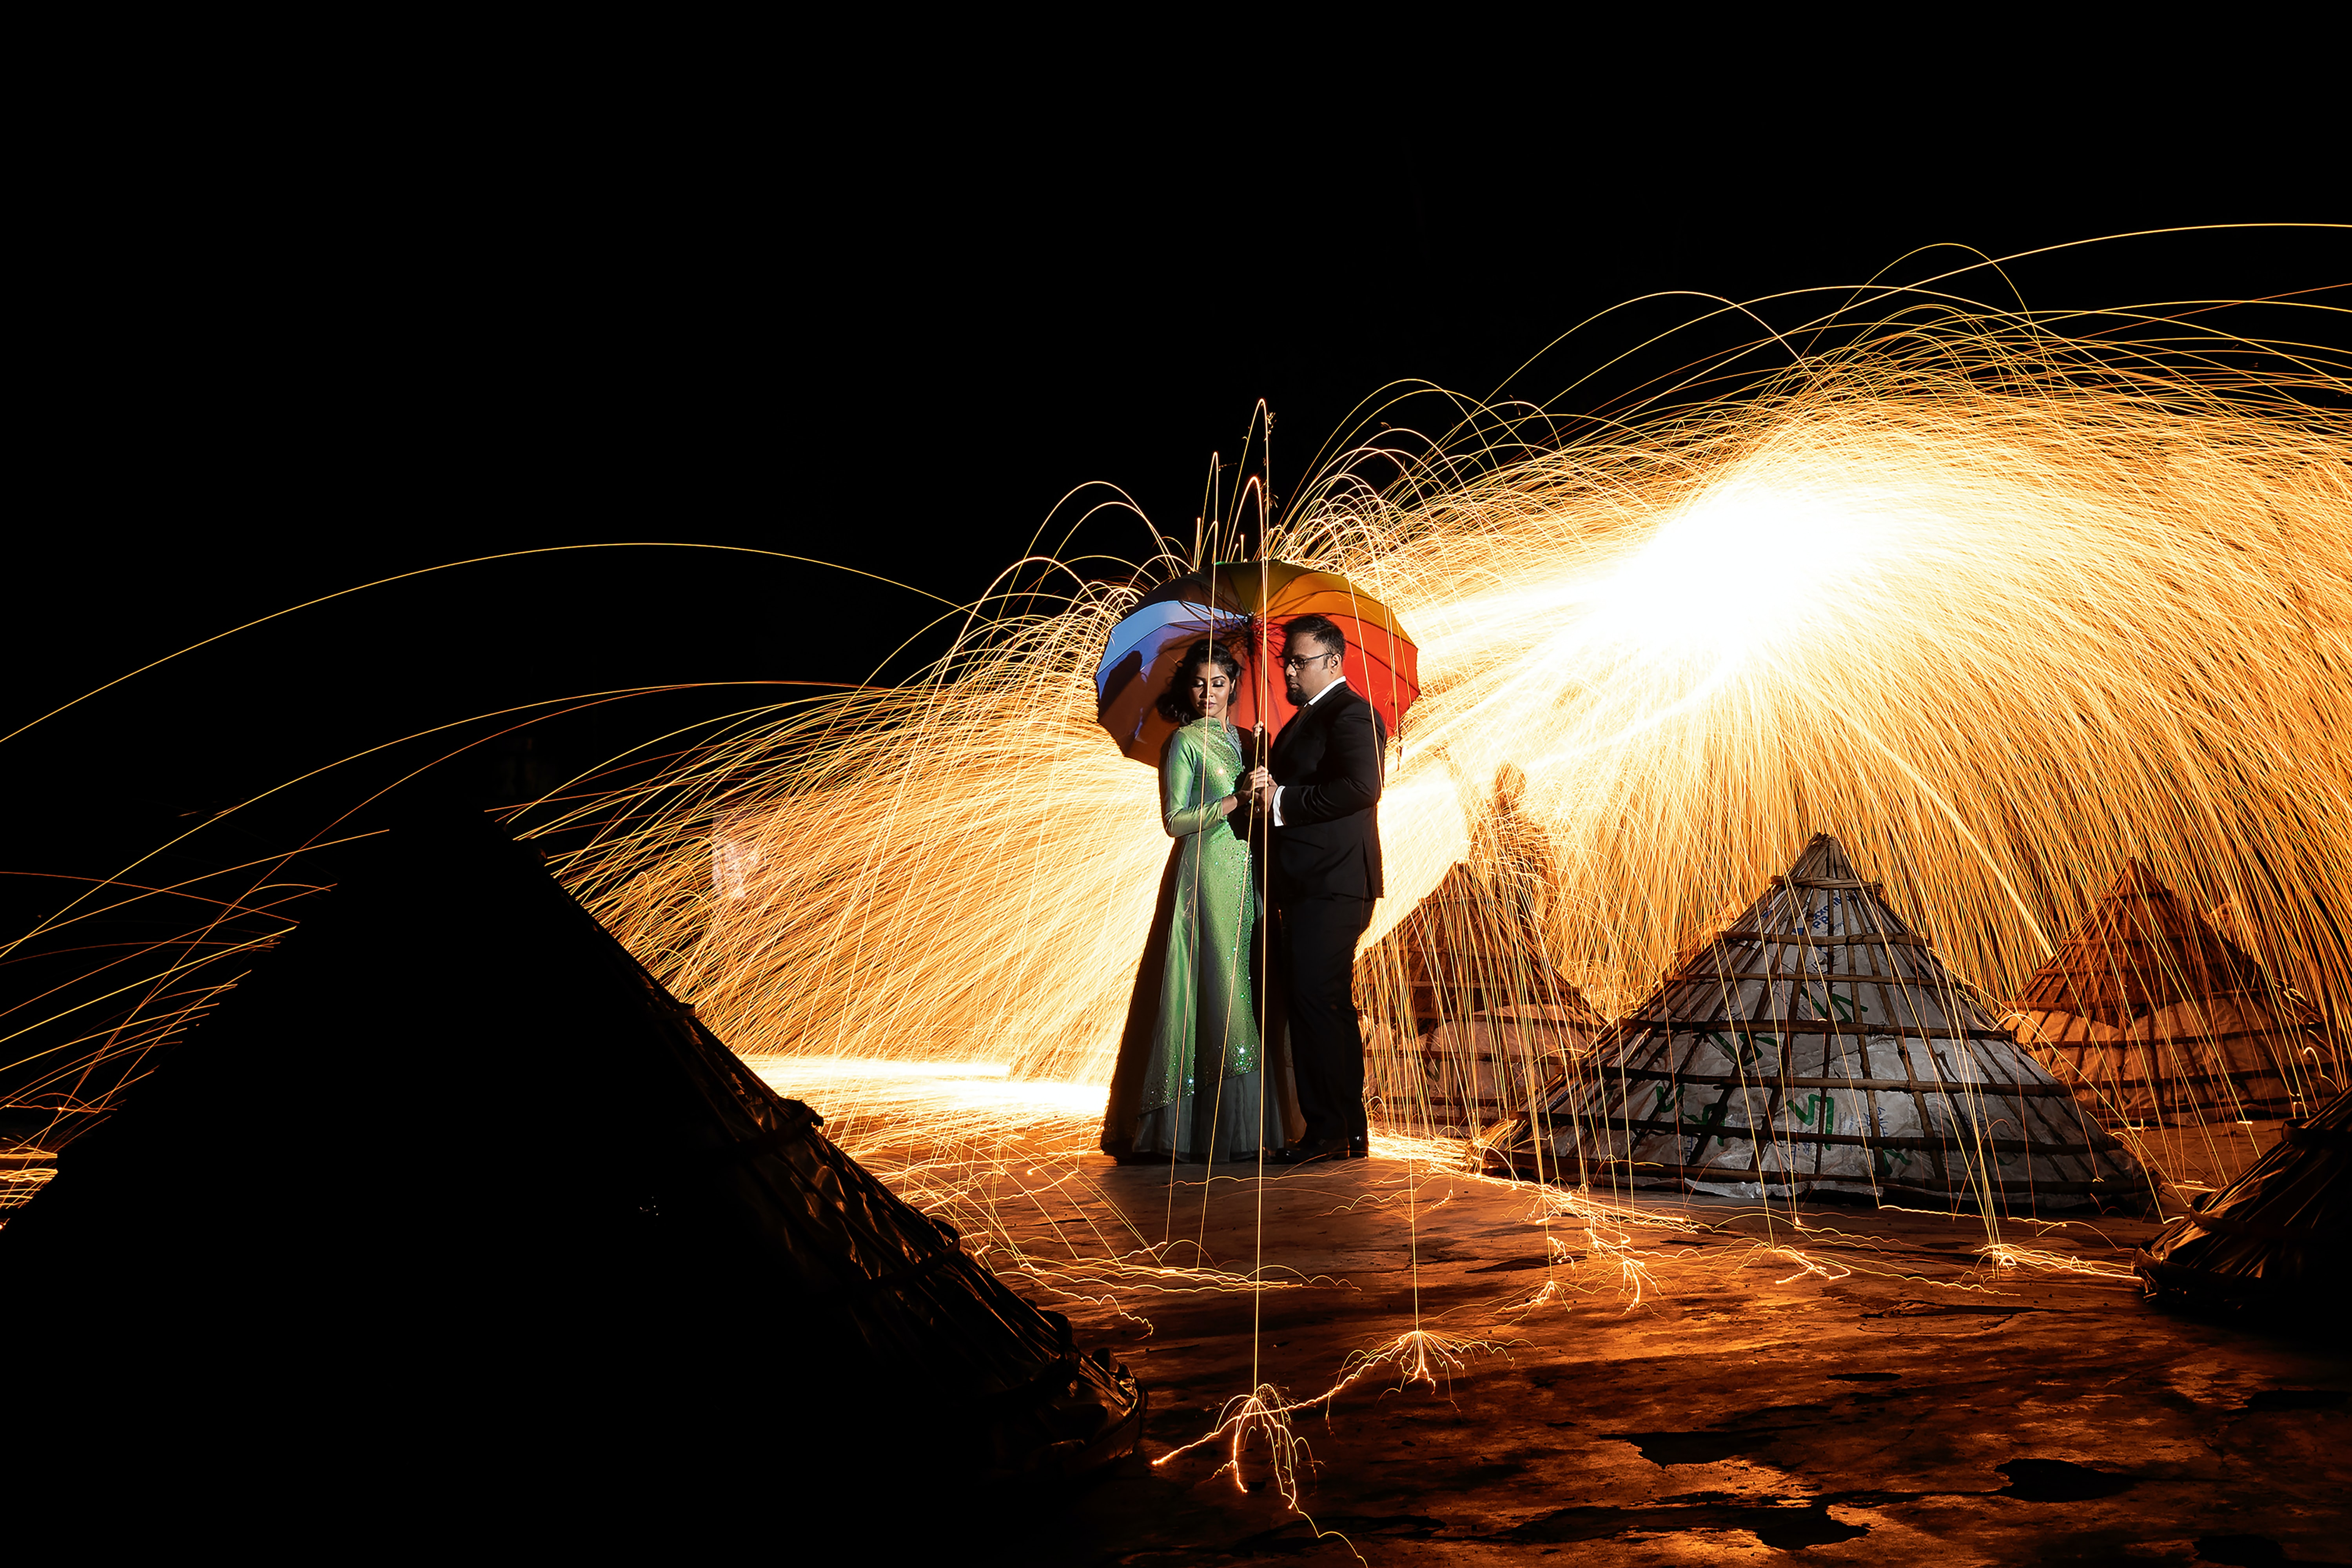 man and woman standing near huts steel wool photography